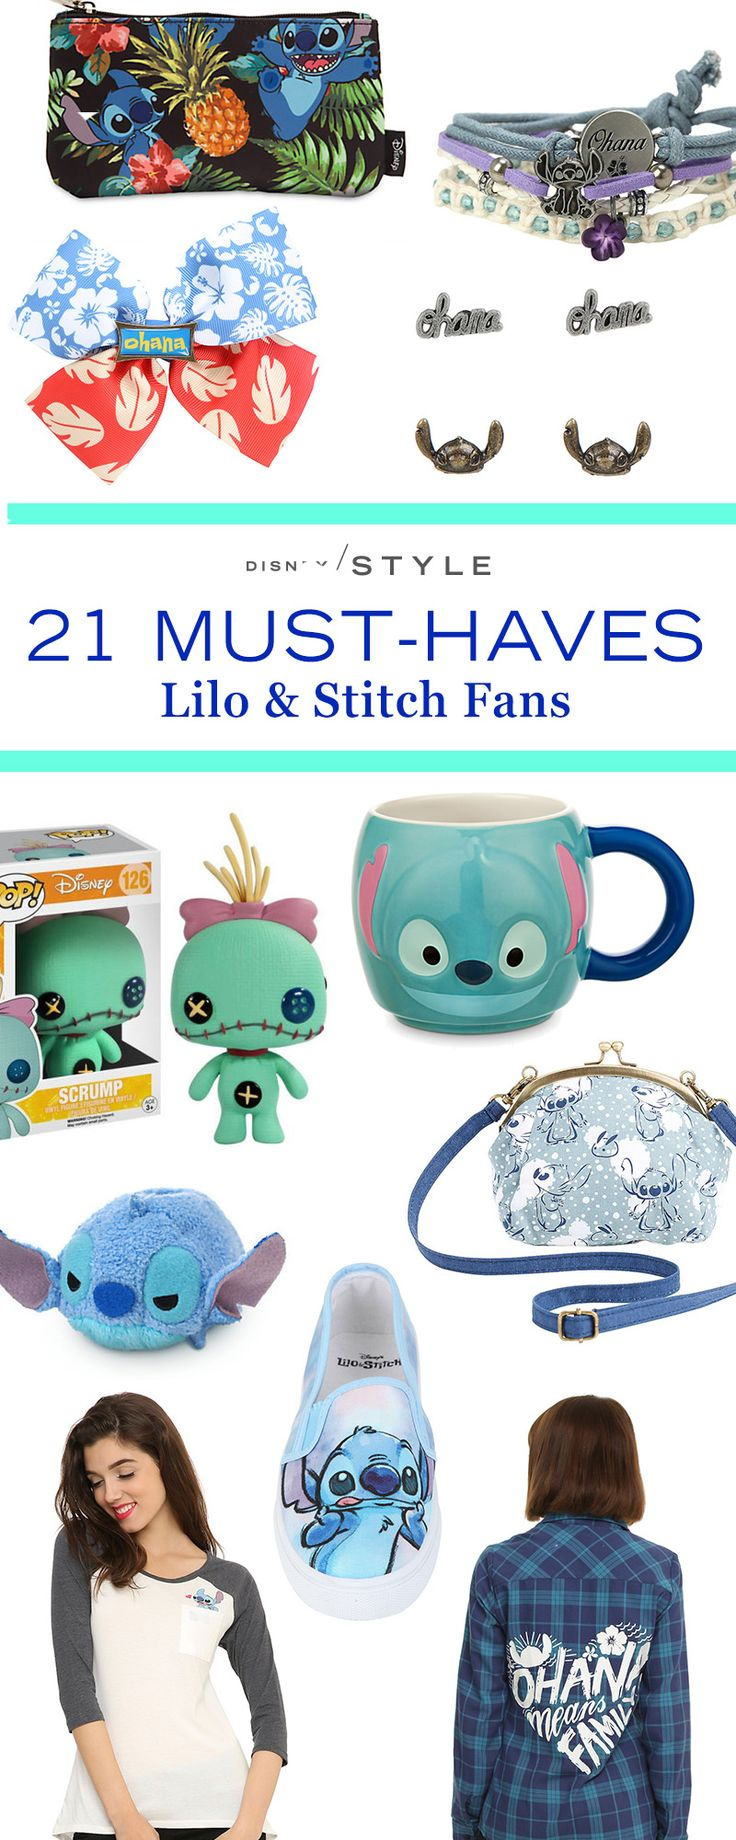 21 items and accessories Lilo and Stitch fans have to have.   [ https://style.disney.com/fashion/2016/03/21/things-lilo-and-stitch-fans-have-to-have/#ohana-bracelets ]